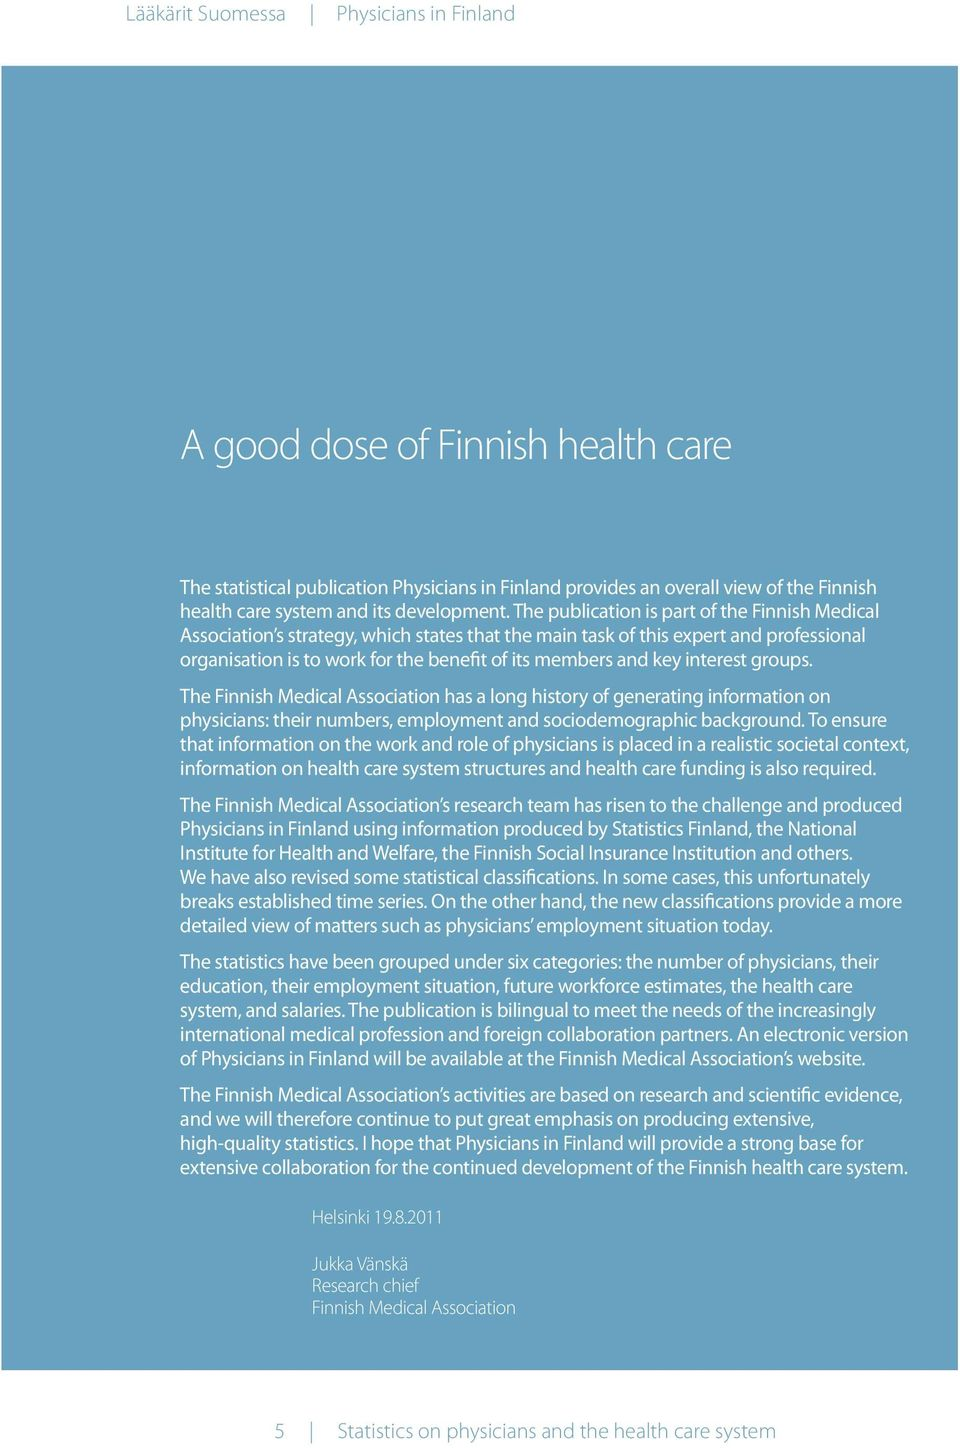 The publication is part of the Finnish Medical Association s strategy, which states that the main task of this expert and professional organisation is to work for the benefit of its members and key